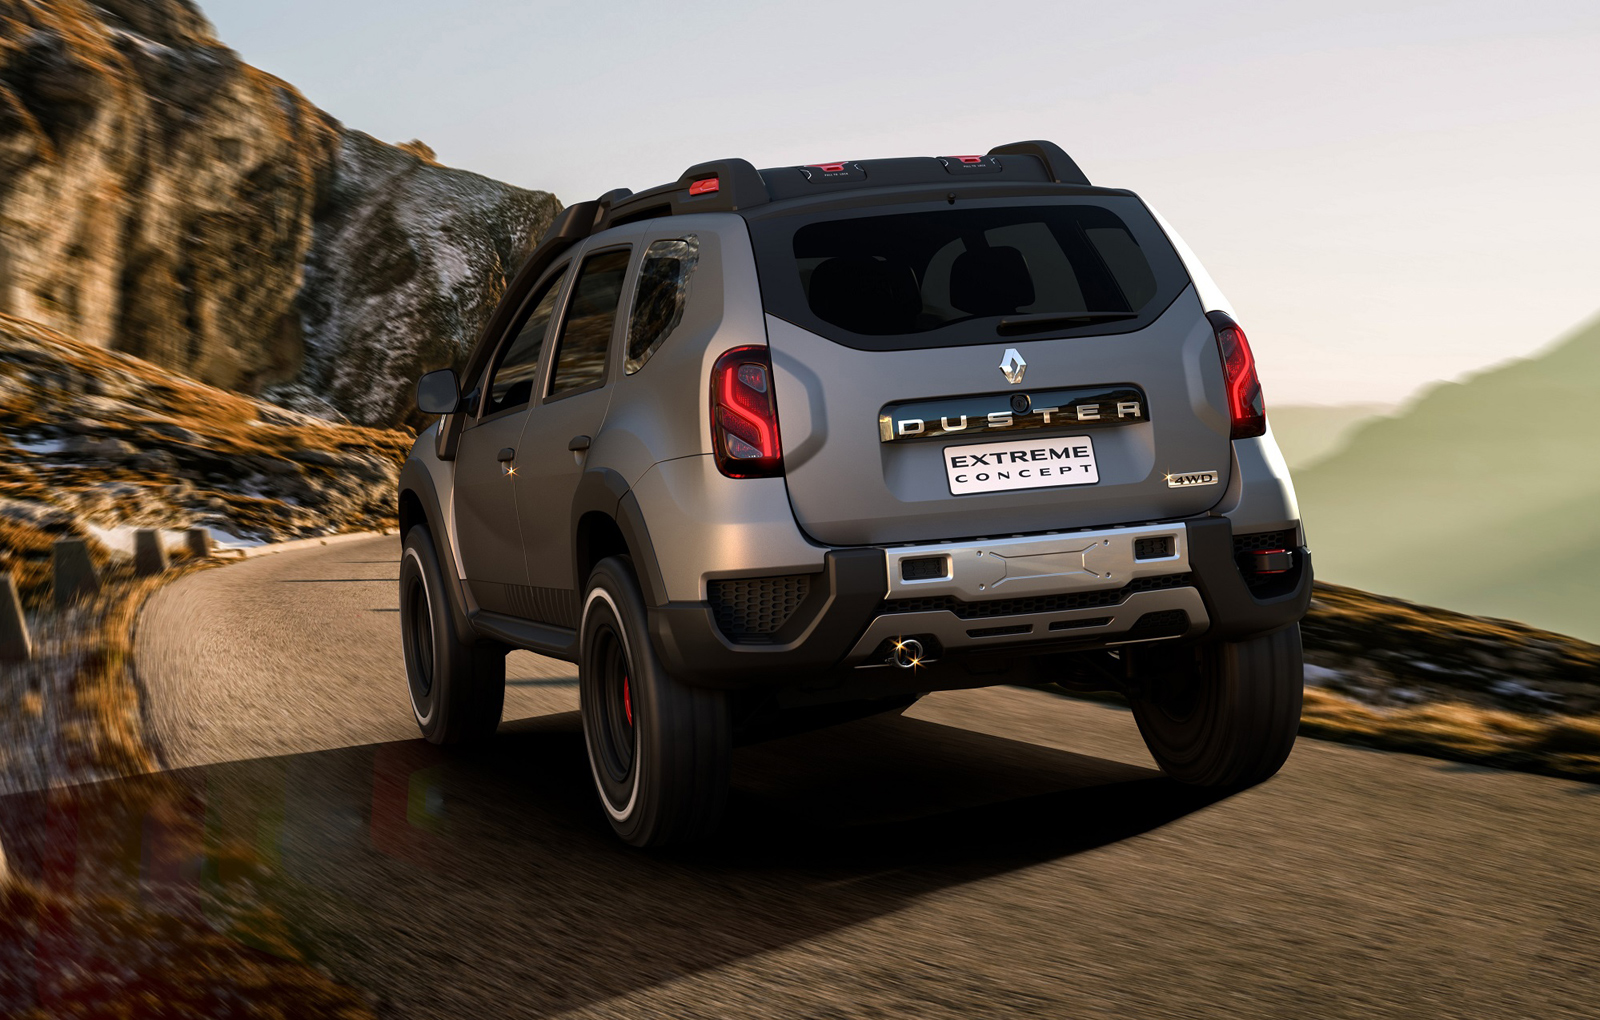 renault-duster-extreme-concept-10-11-2016